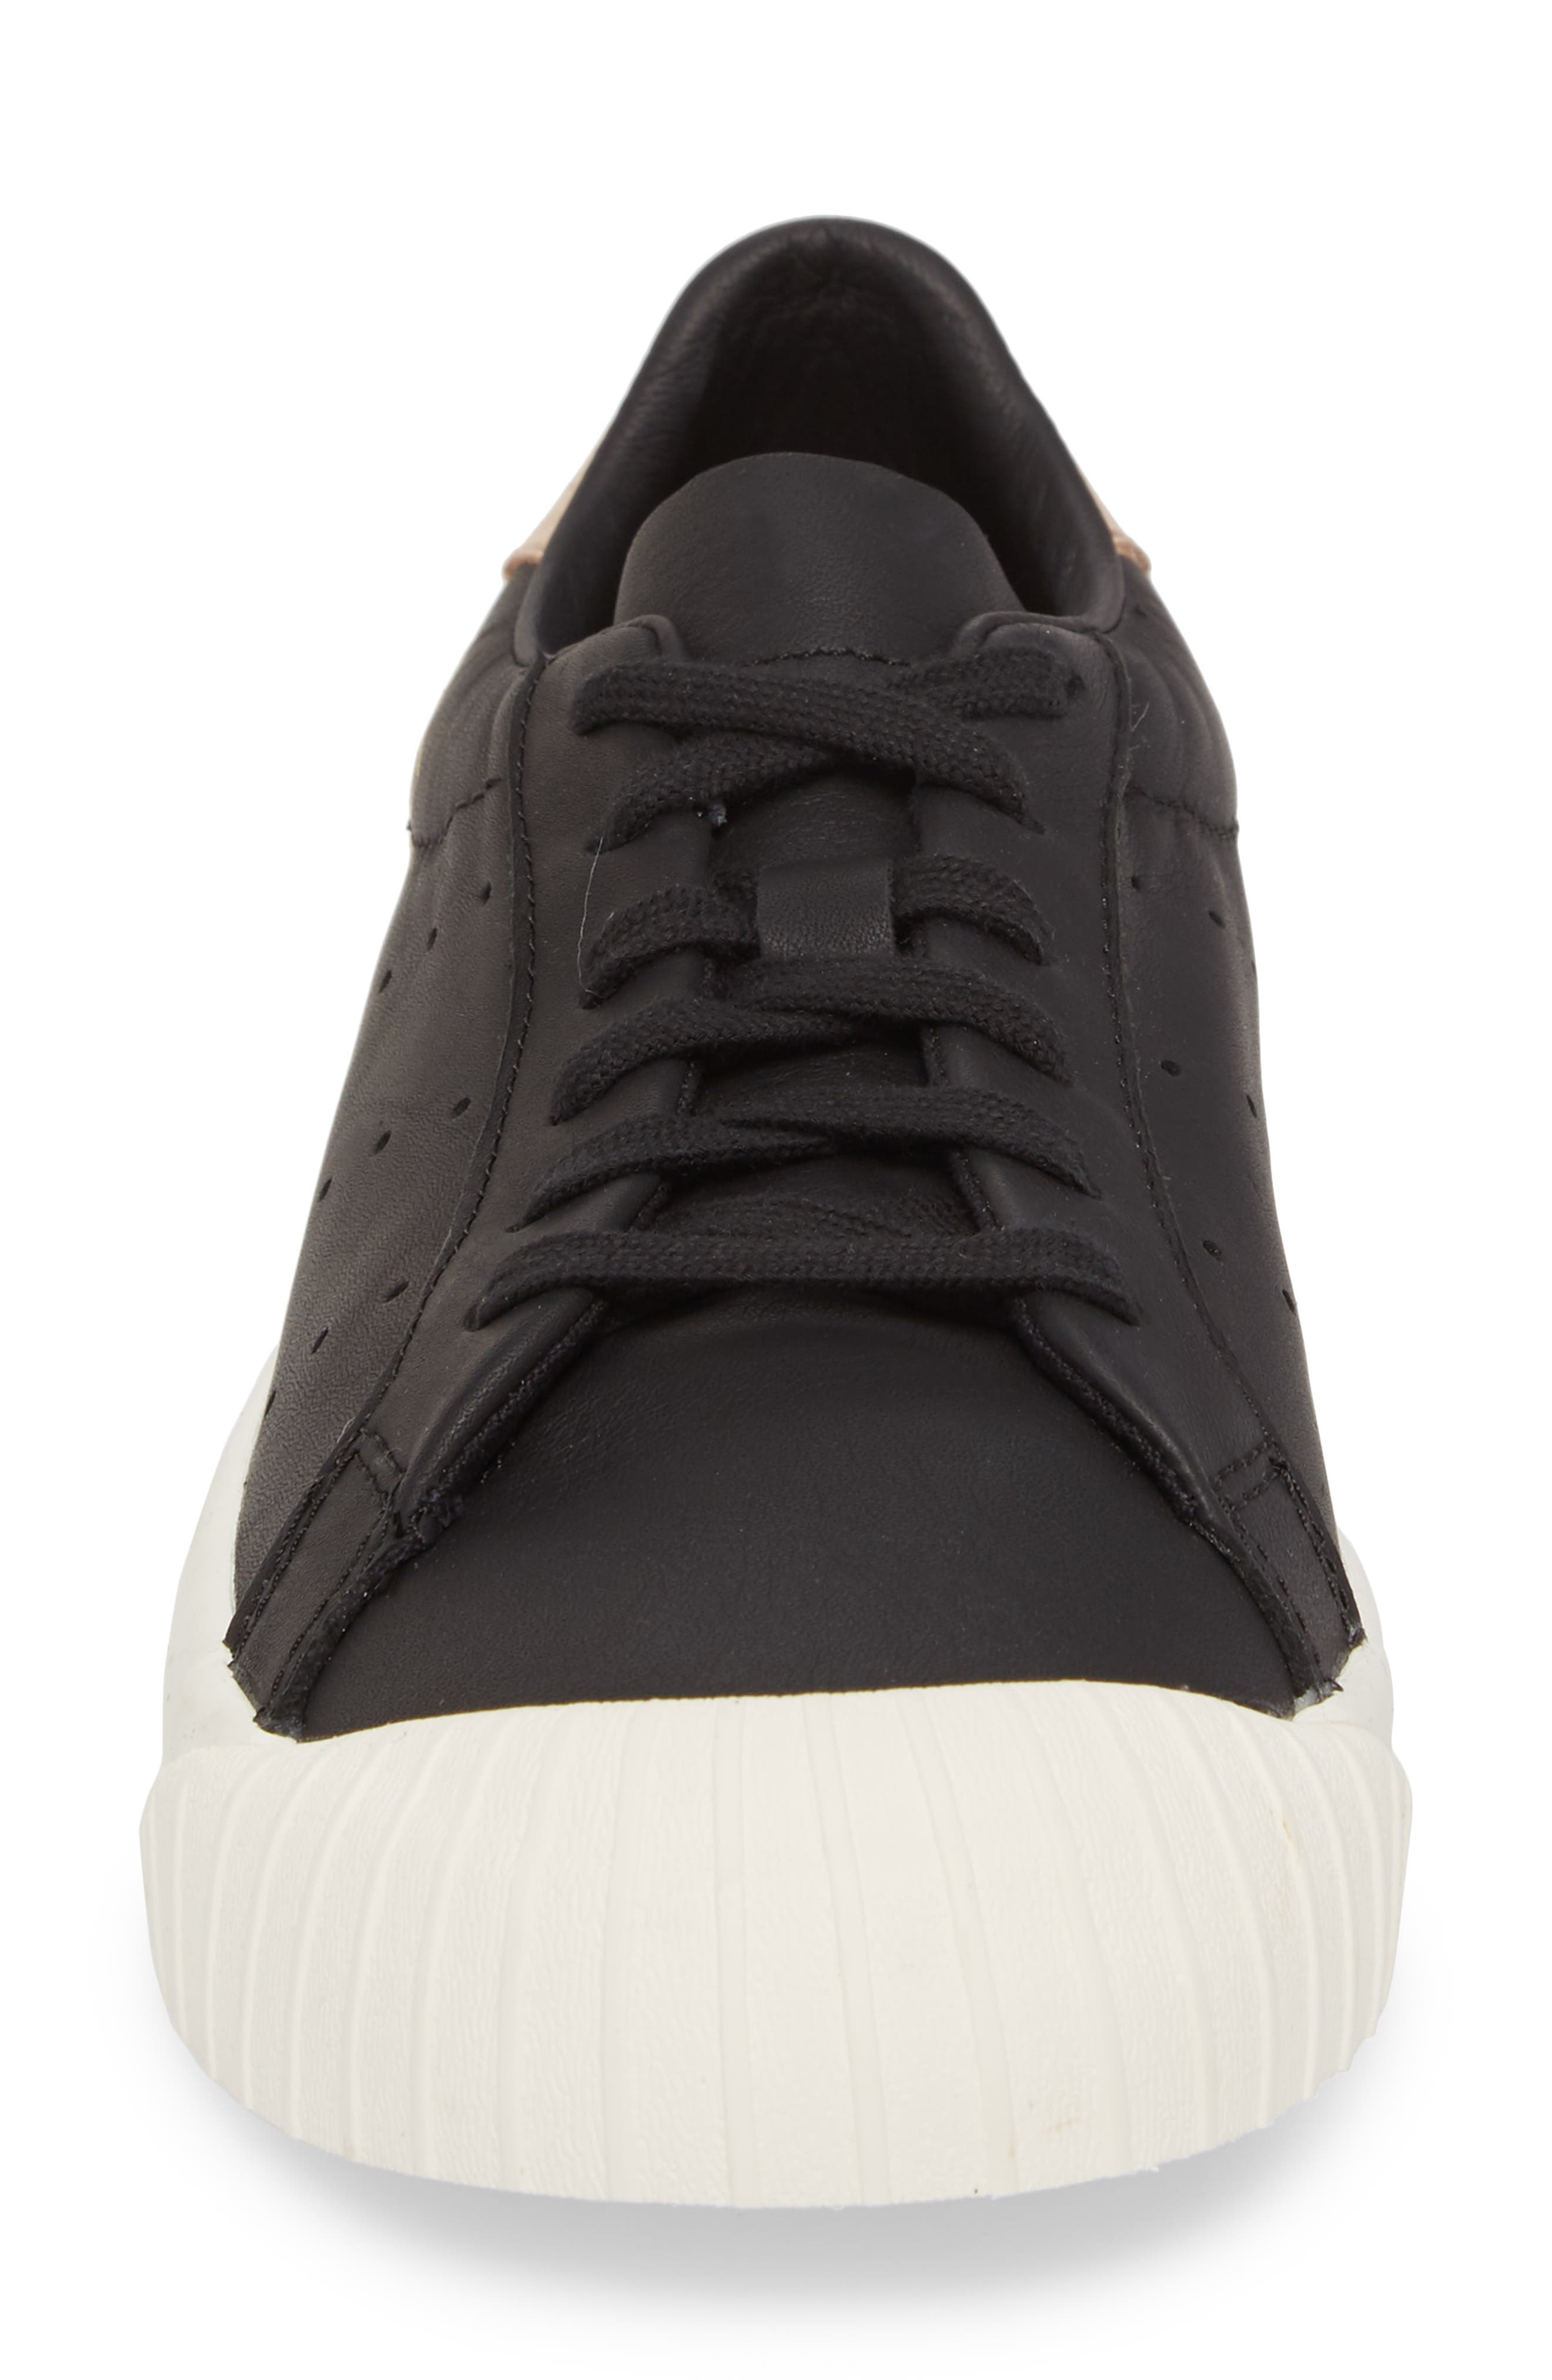 Everyn Perforated Low Top Sneaker,                             Alternate thumbnail 4, color,                             001